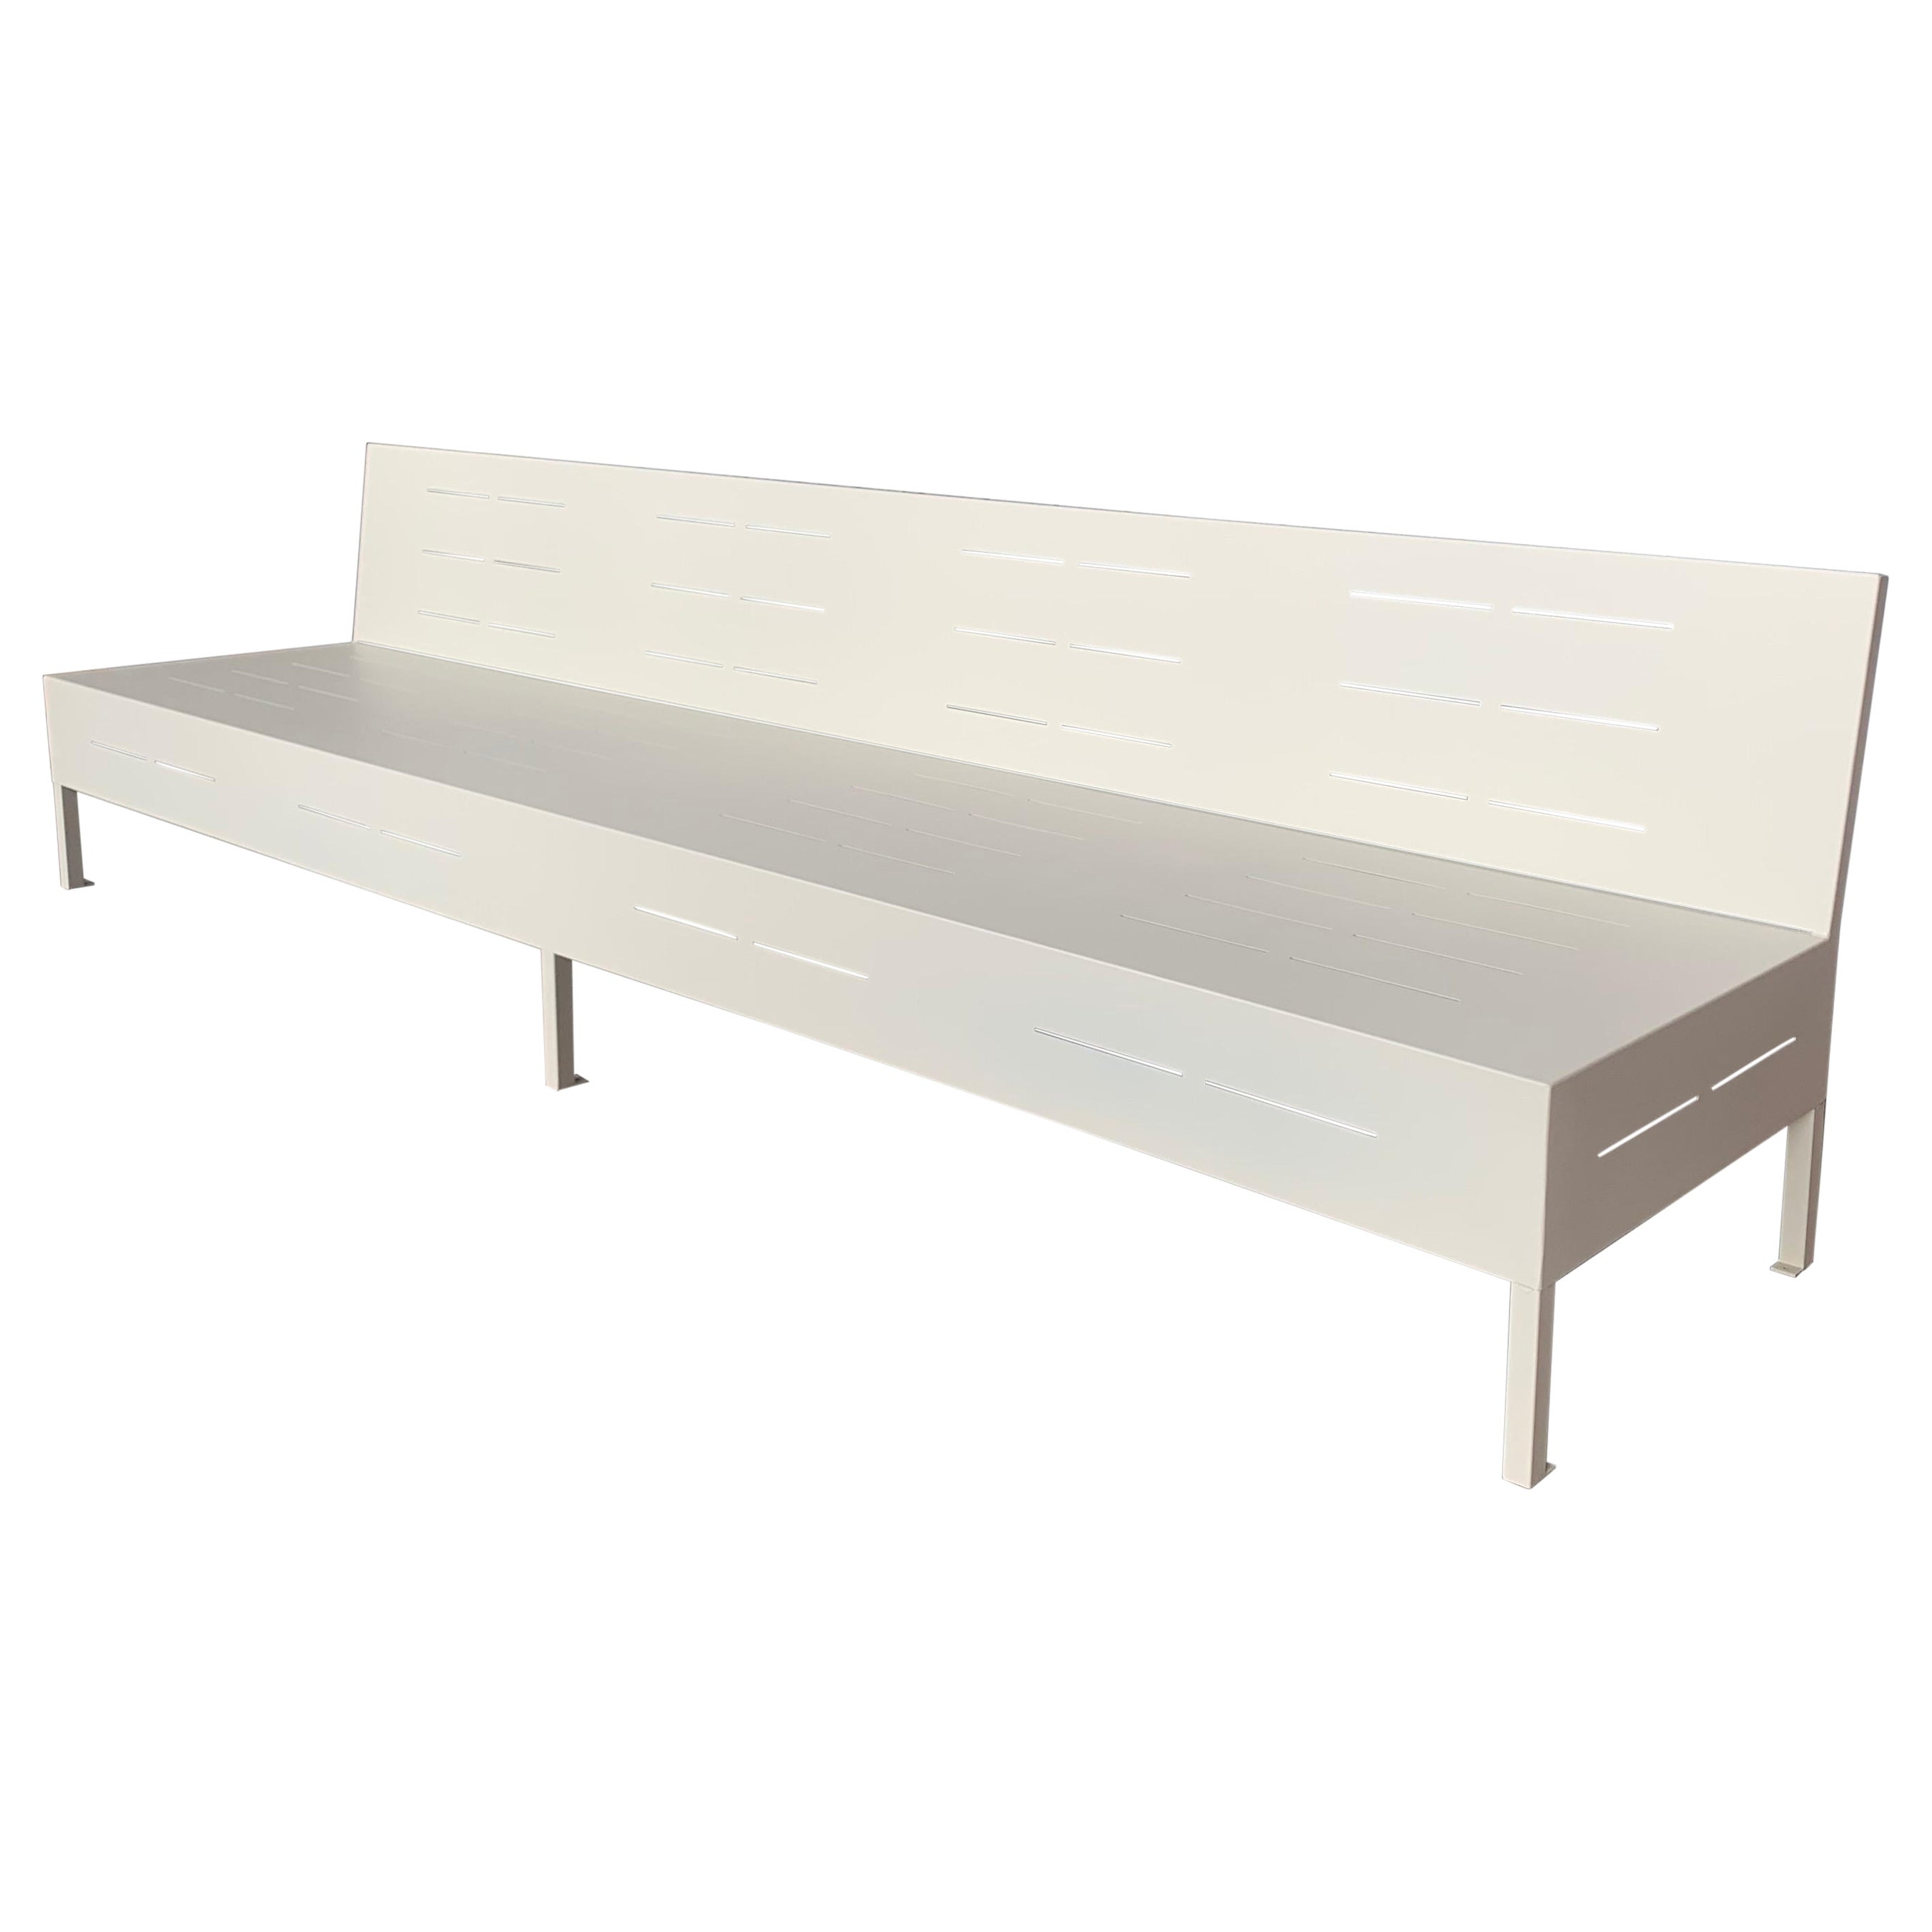 New Large Iron Hall Bench for Outdoor and Indoor with Epoxy Finished